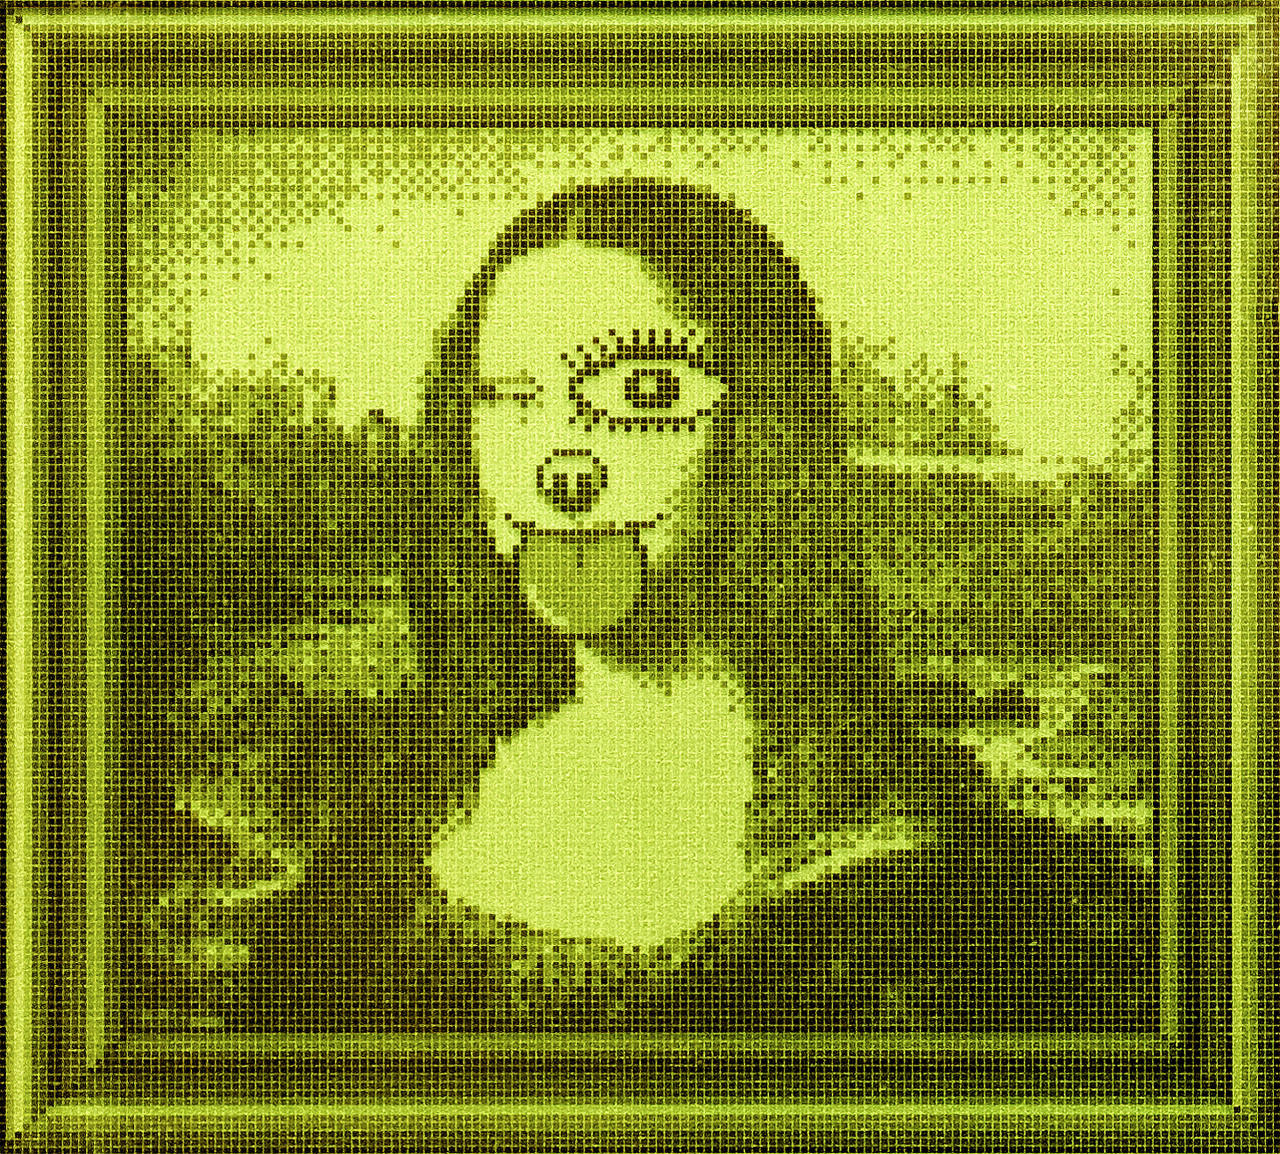 Roc Herms, 8-bit Portraits